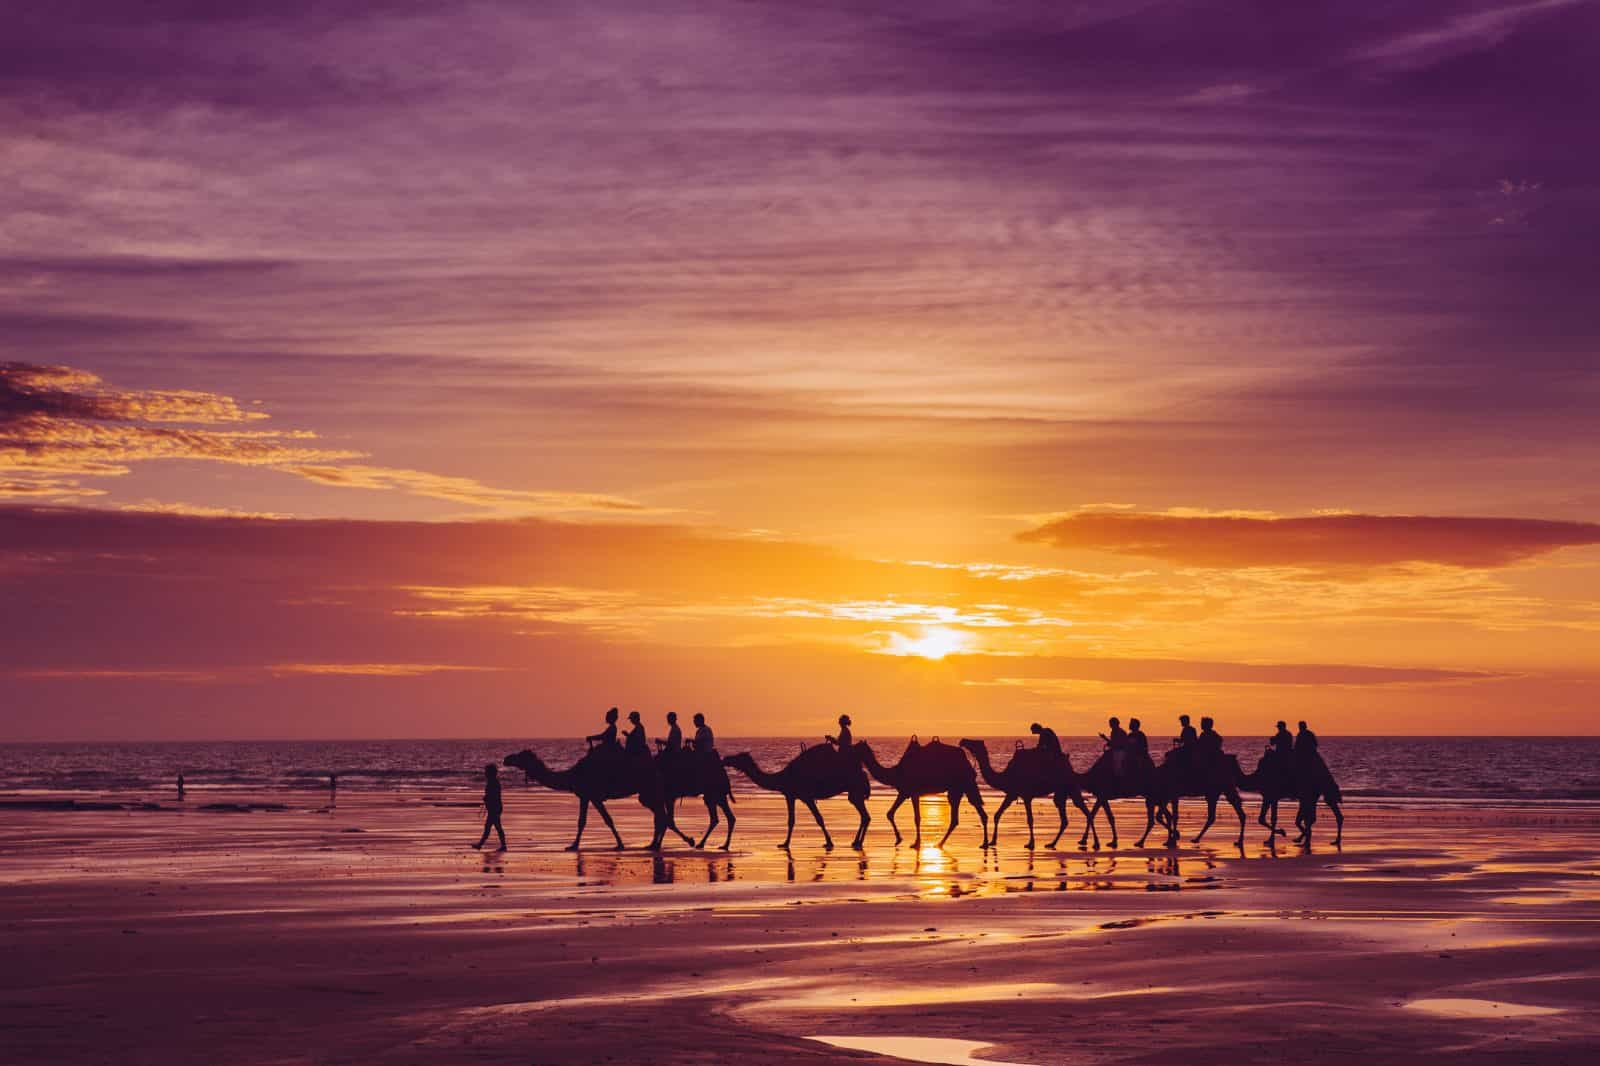 Photo credit: Camels on Cable Beach at Sunset